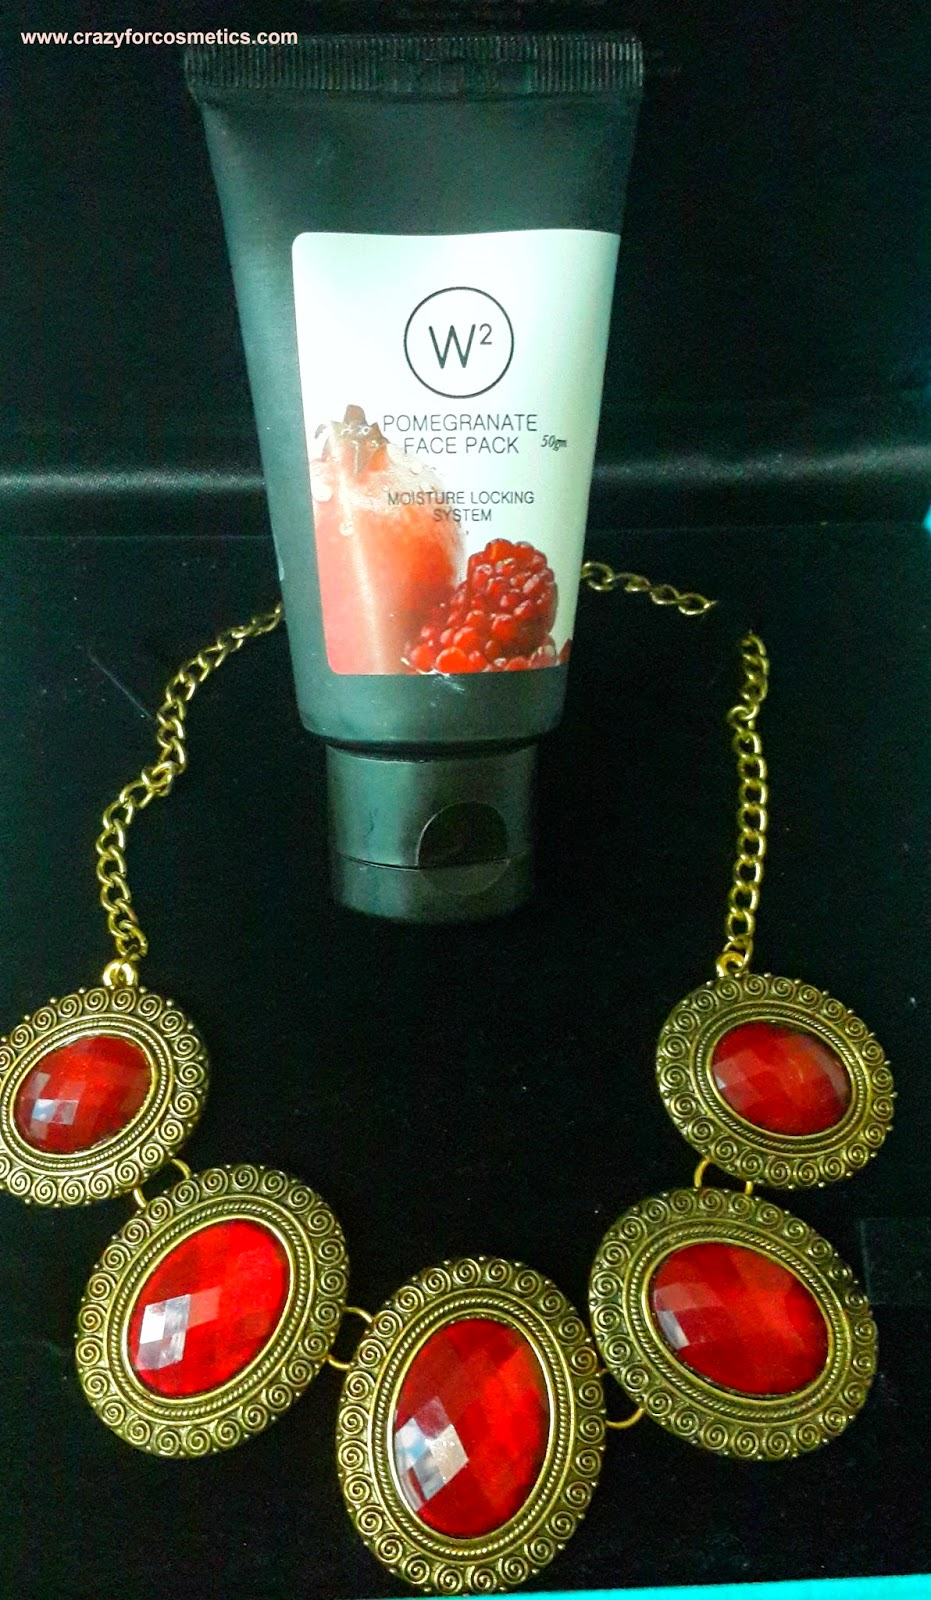 W 2 pomegranate face mask-W 2 pomegranate face mask review-jabong online shopping India-W2 products online India